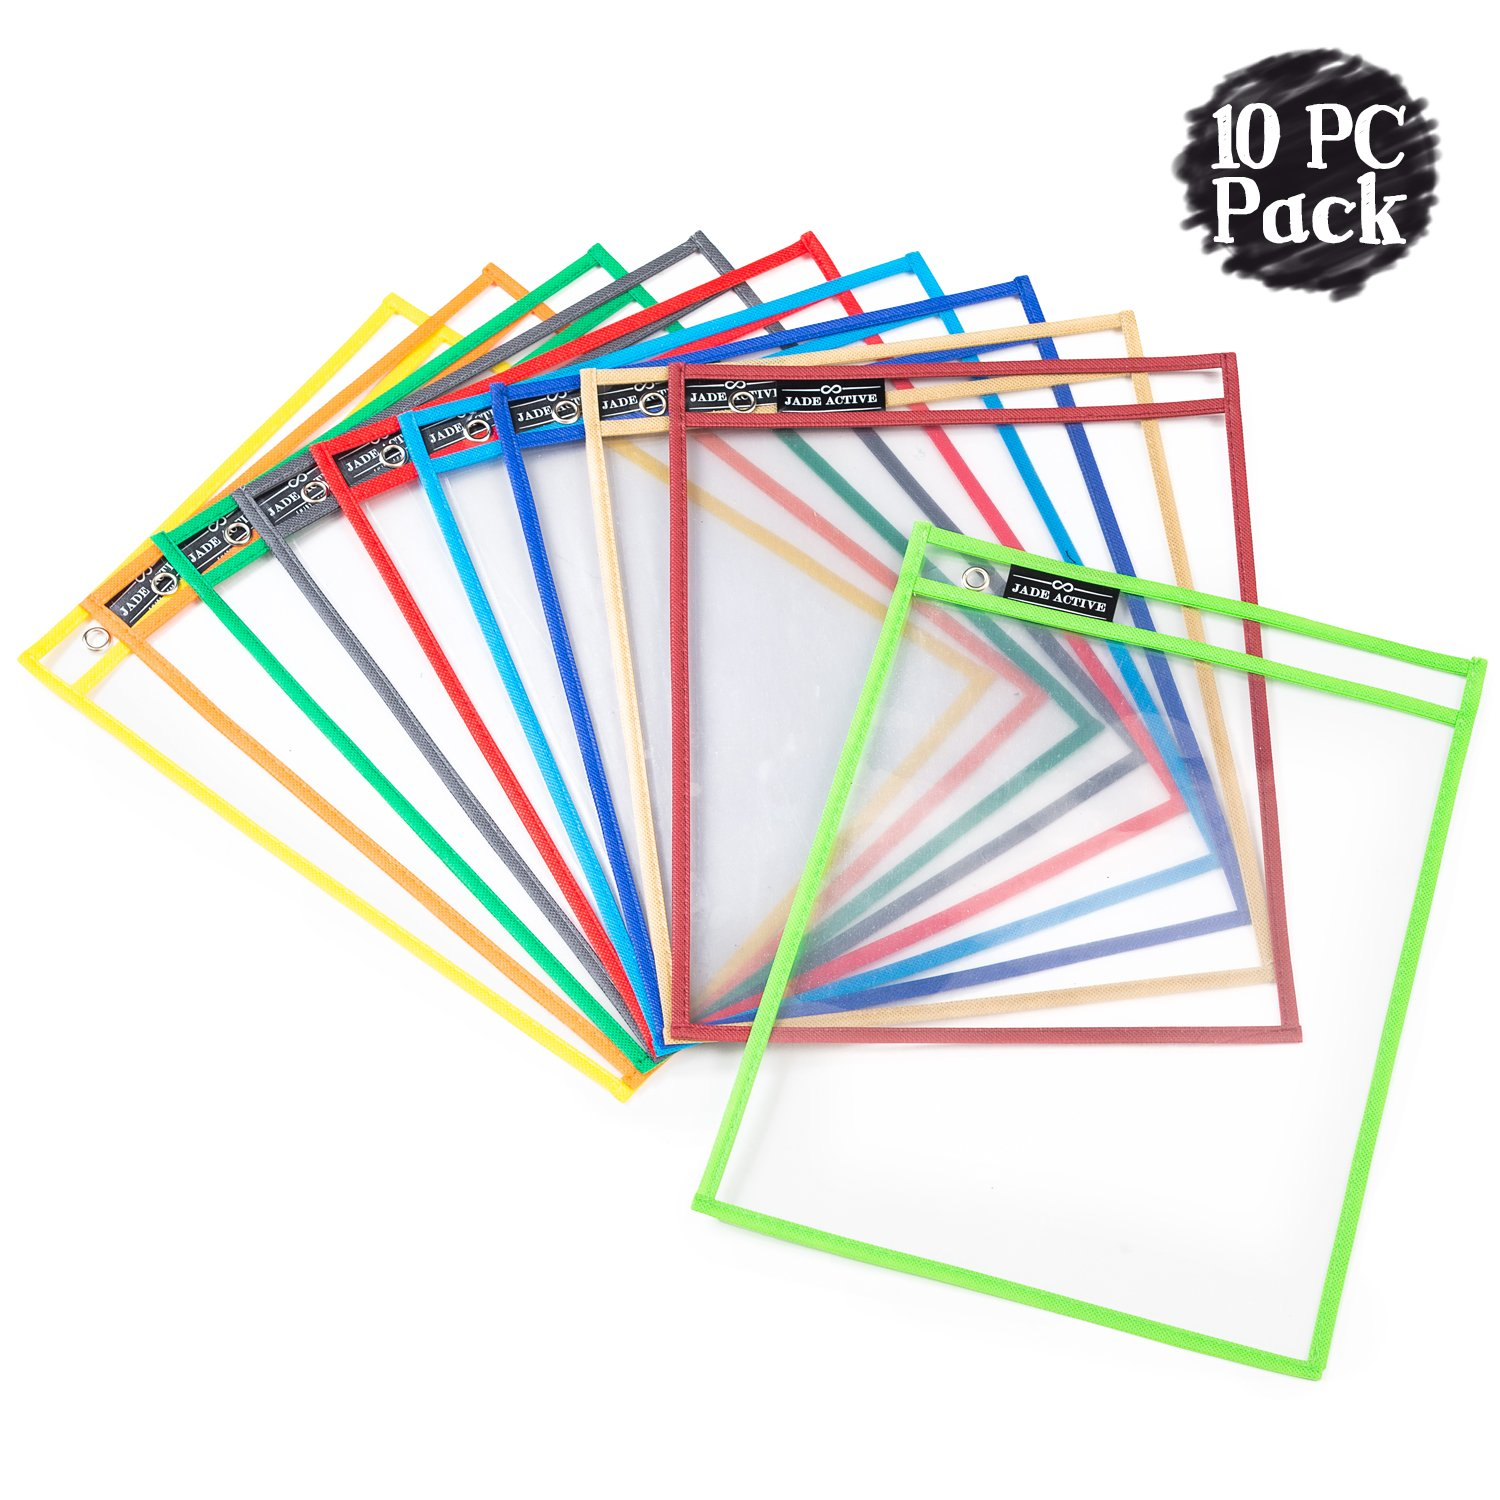 Dry Erase Pockets - Reusable + Oversized - Size 10 X 13 inches - 10 Pockets for Adults and Children - Mixed Colors - Ideal to use at School or at Work